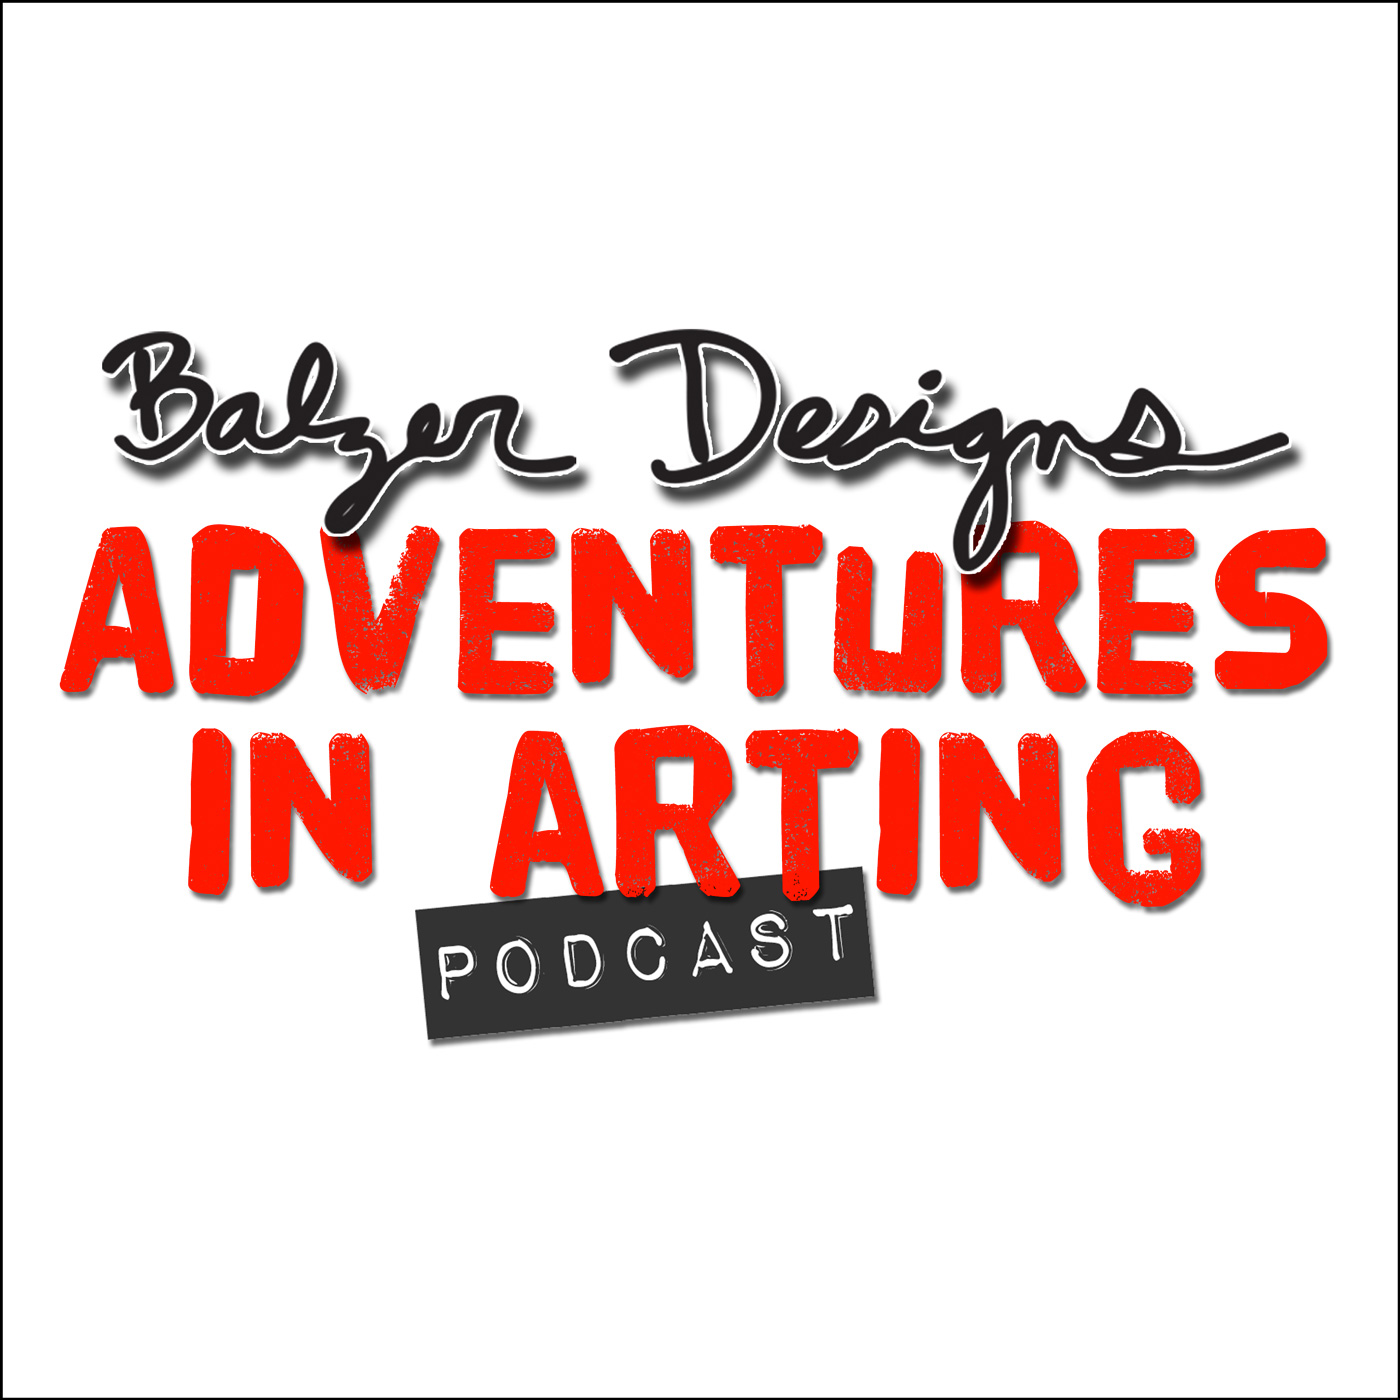 Podcast – Adventures in Arting Podcast